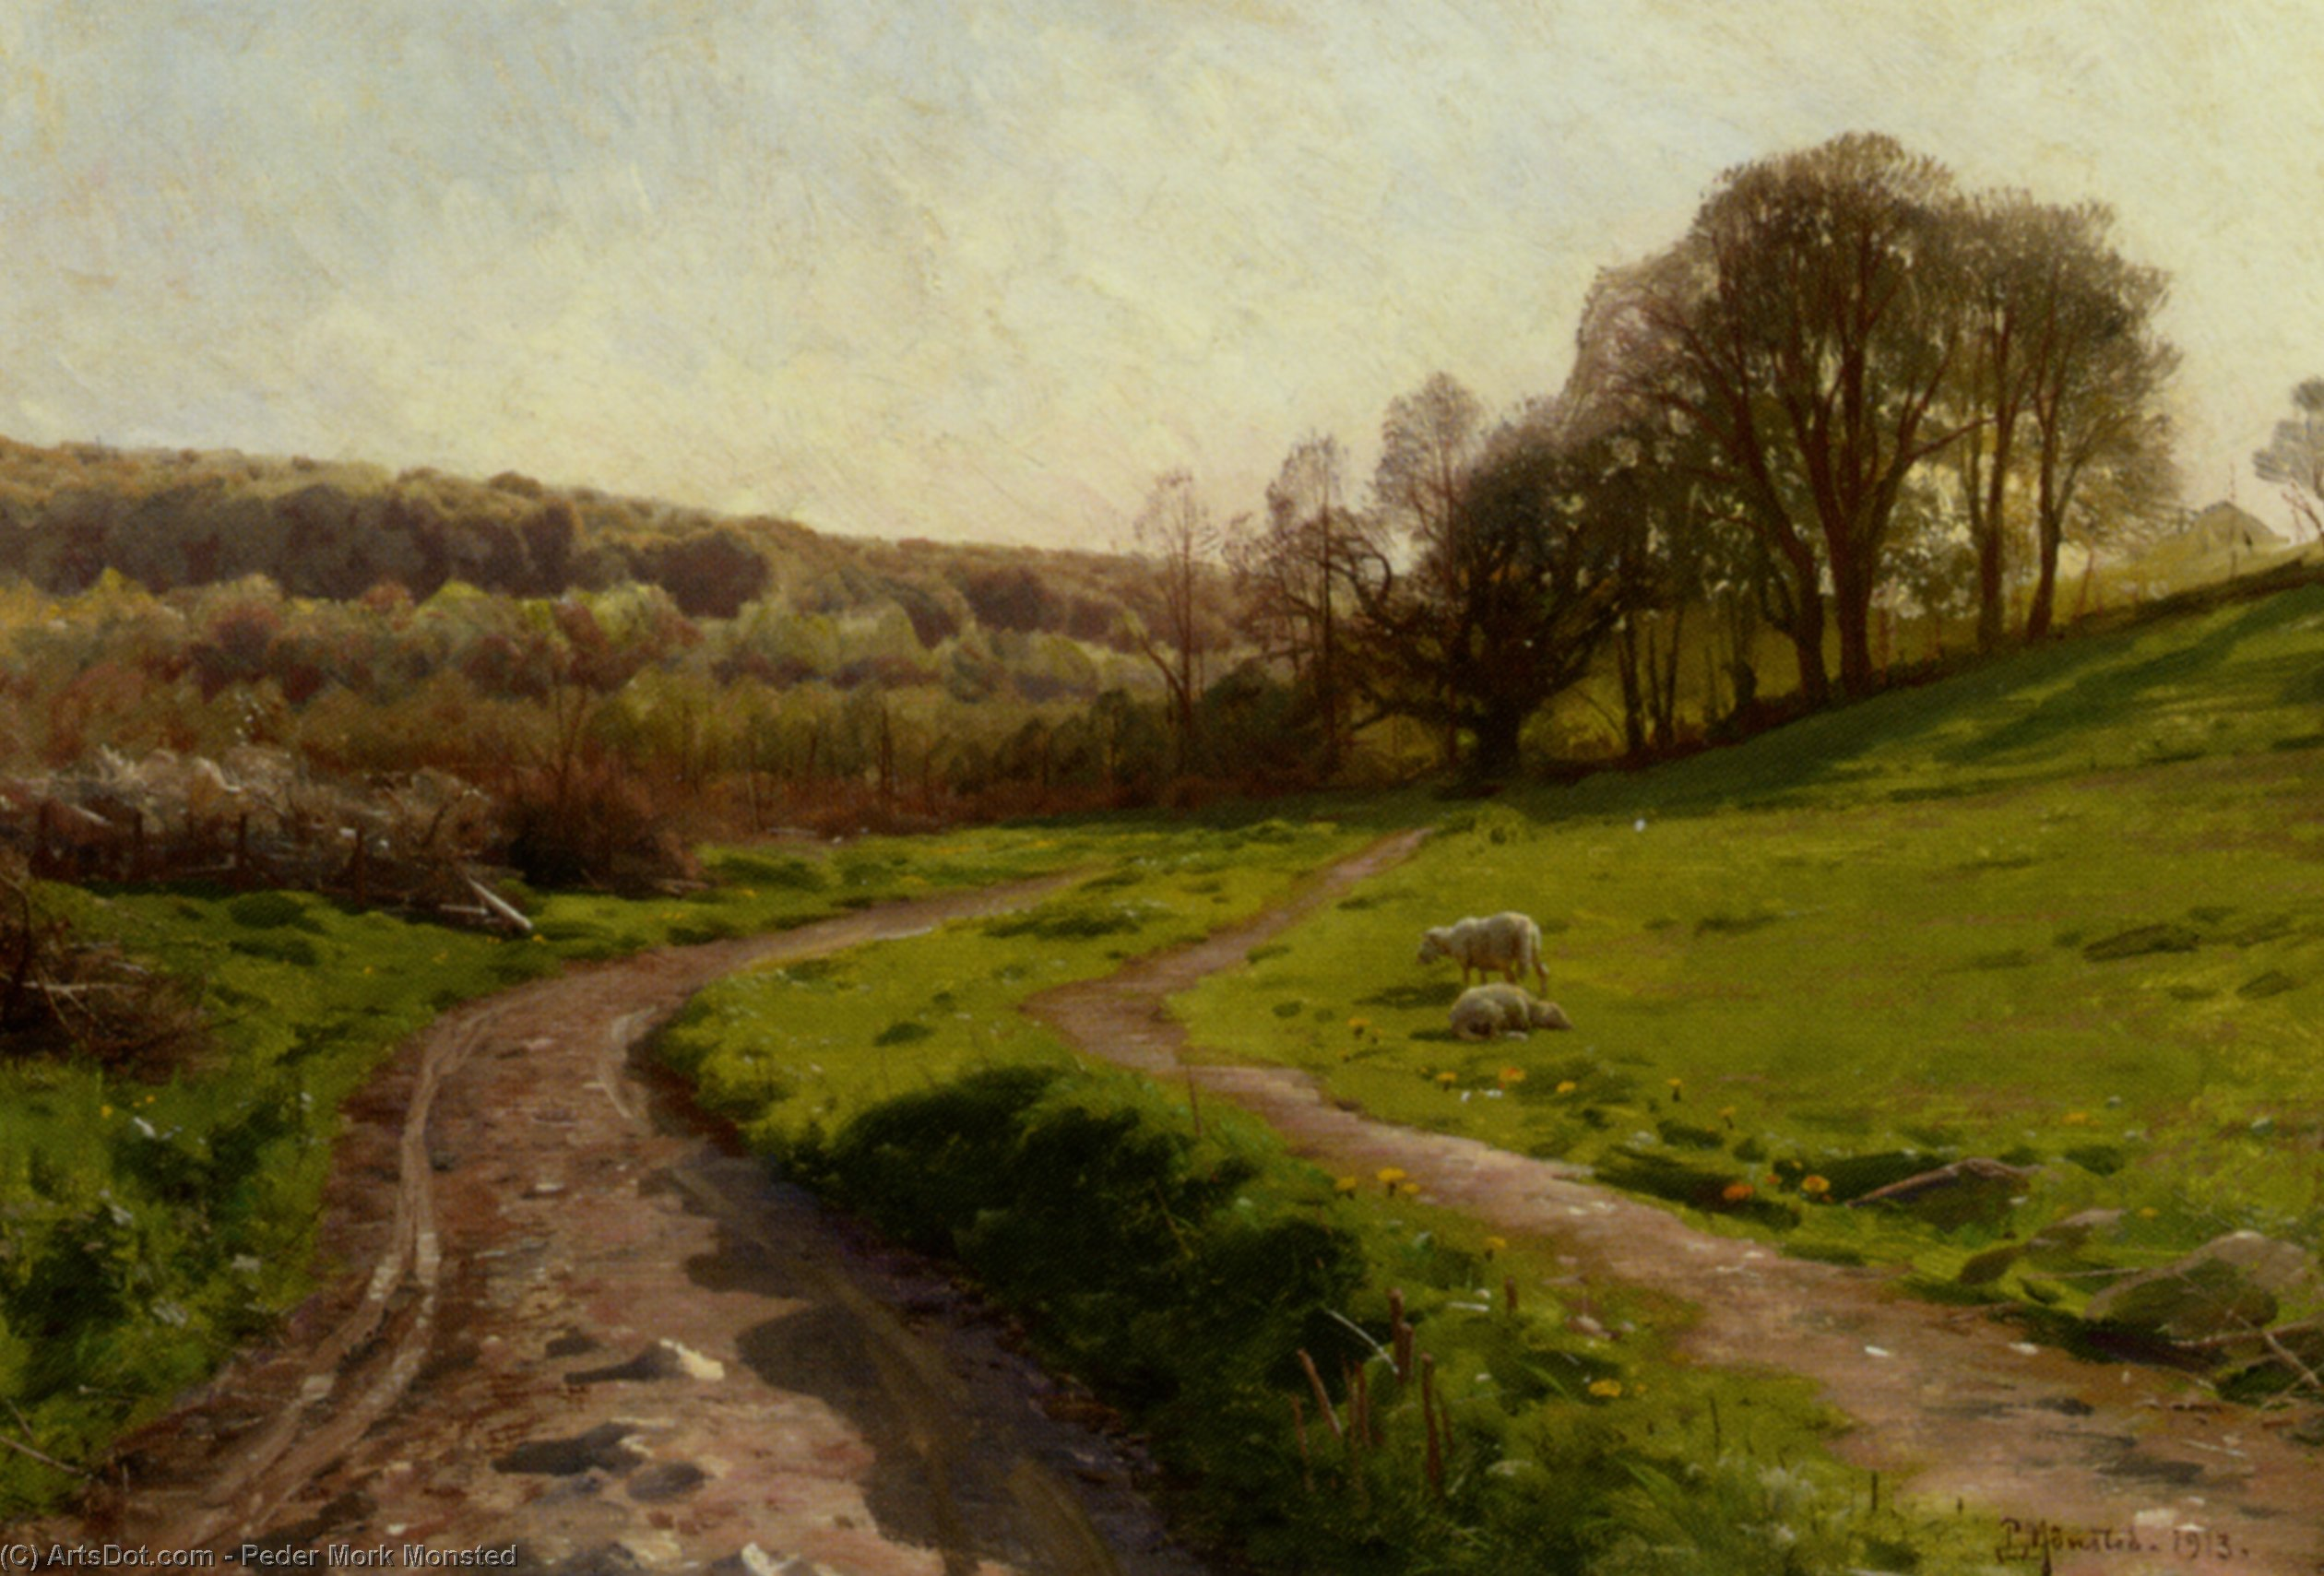 Un pays terrain  de Peder Mork Monsted (1859-1941, Denmark) | Reproduction Peinture | ArtsDot.com